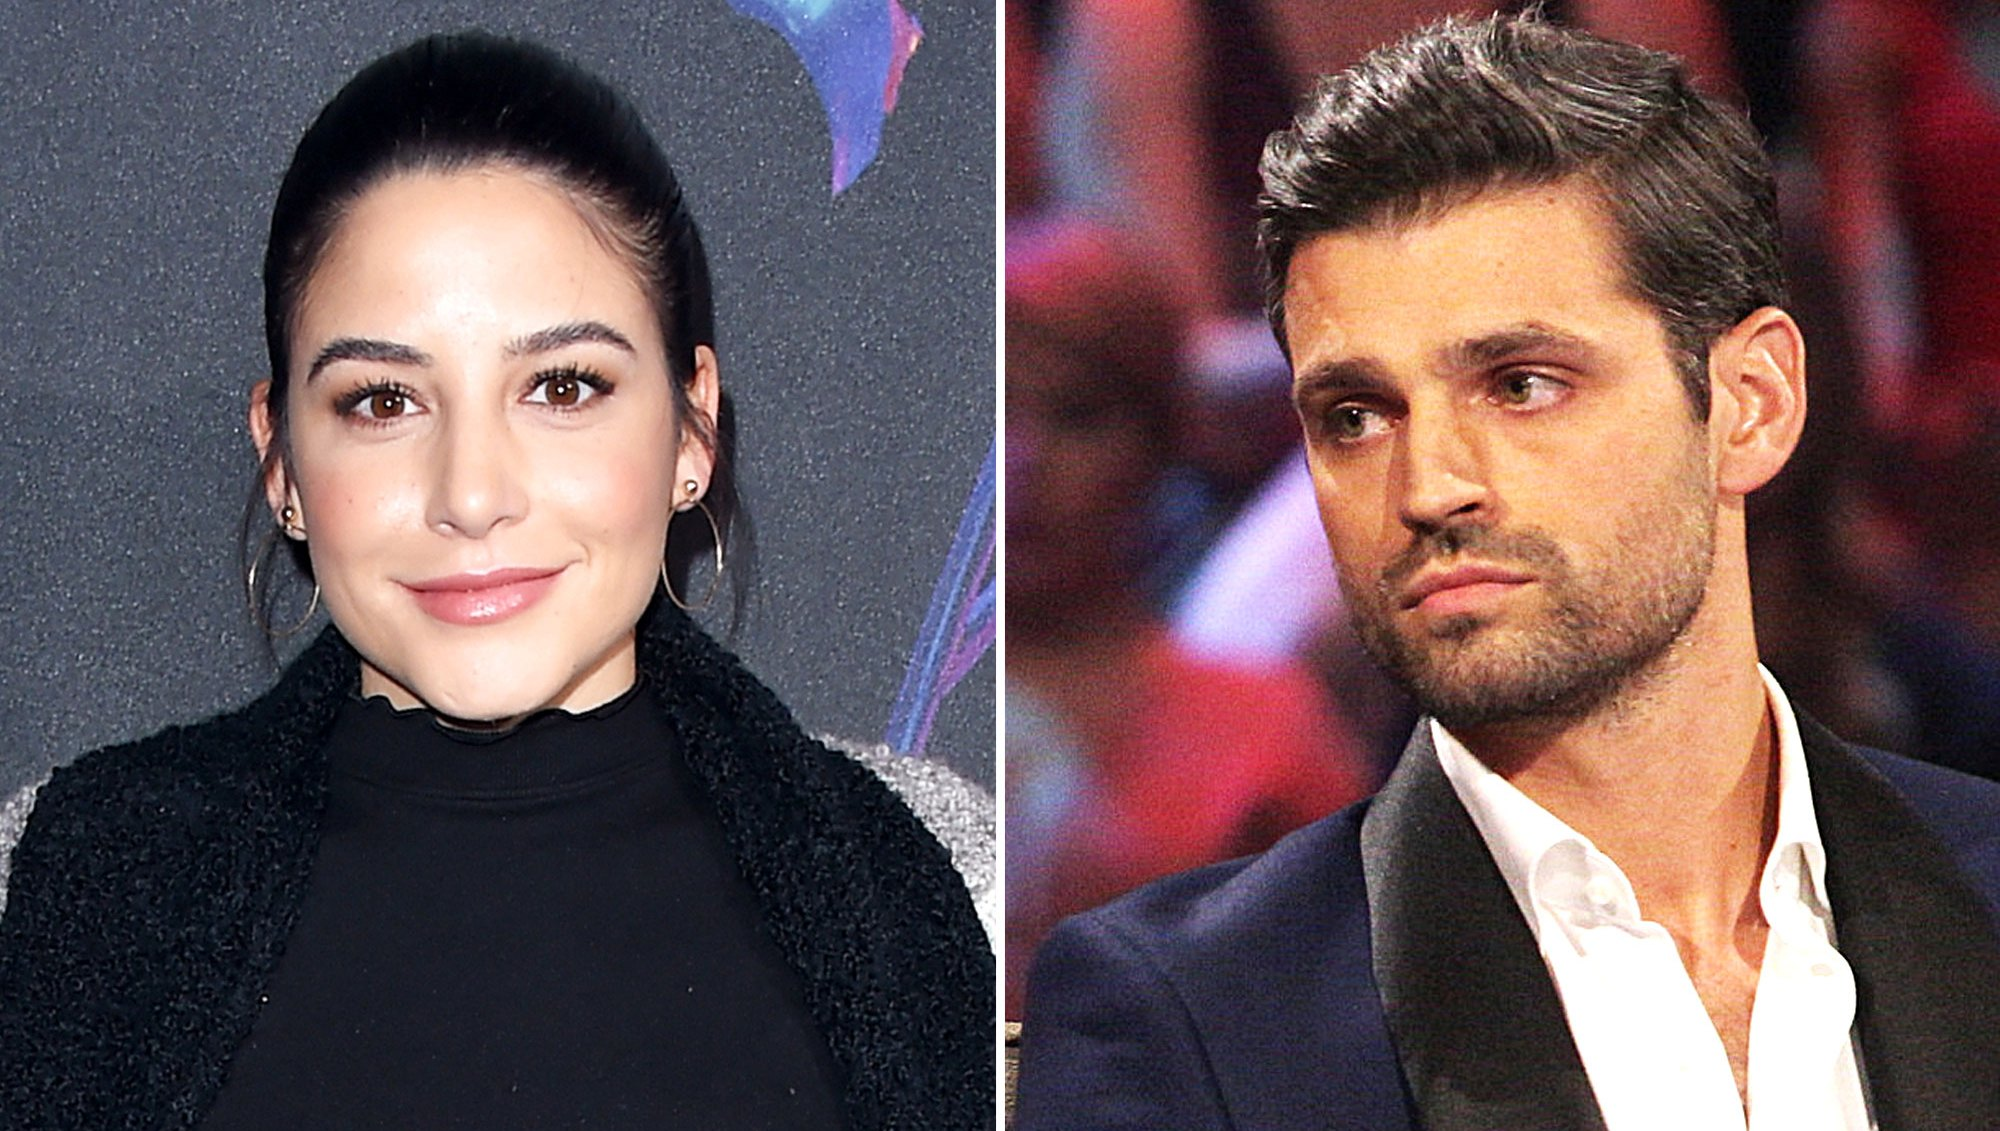 Bibiana Julian Gushes Over Her New Boyfriend After Peter Kraus Drama: 'I'm Totally in Love'